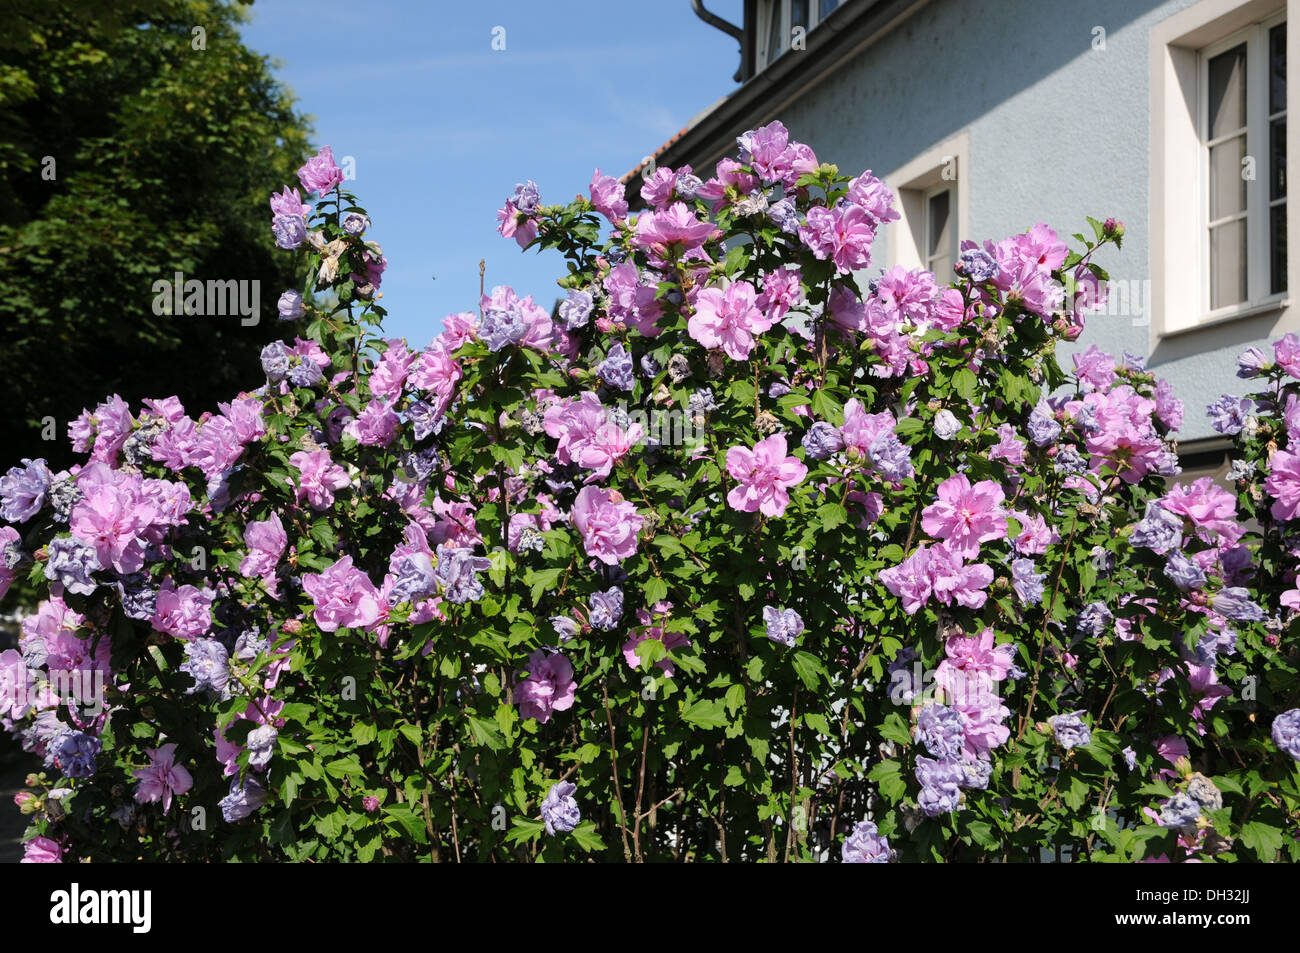 Strauch Sommerblüher Shrub Mallow Stock Photo 62148202 Alamy